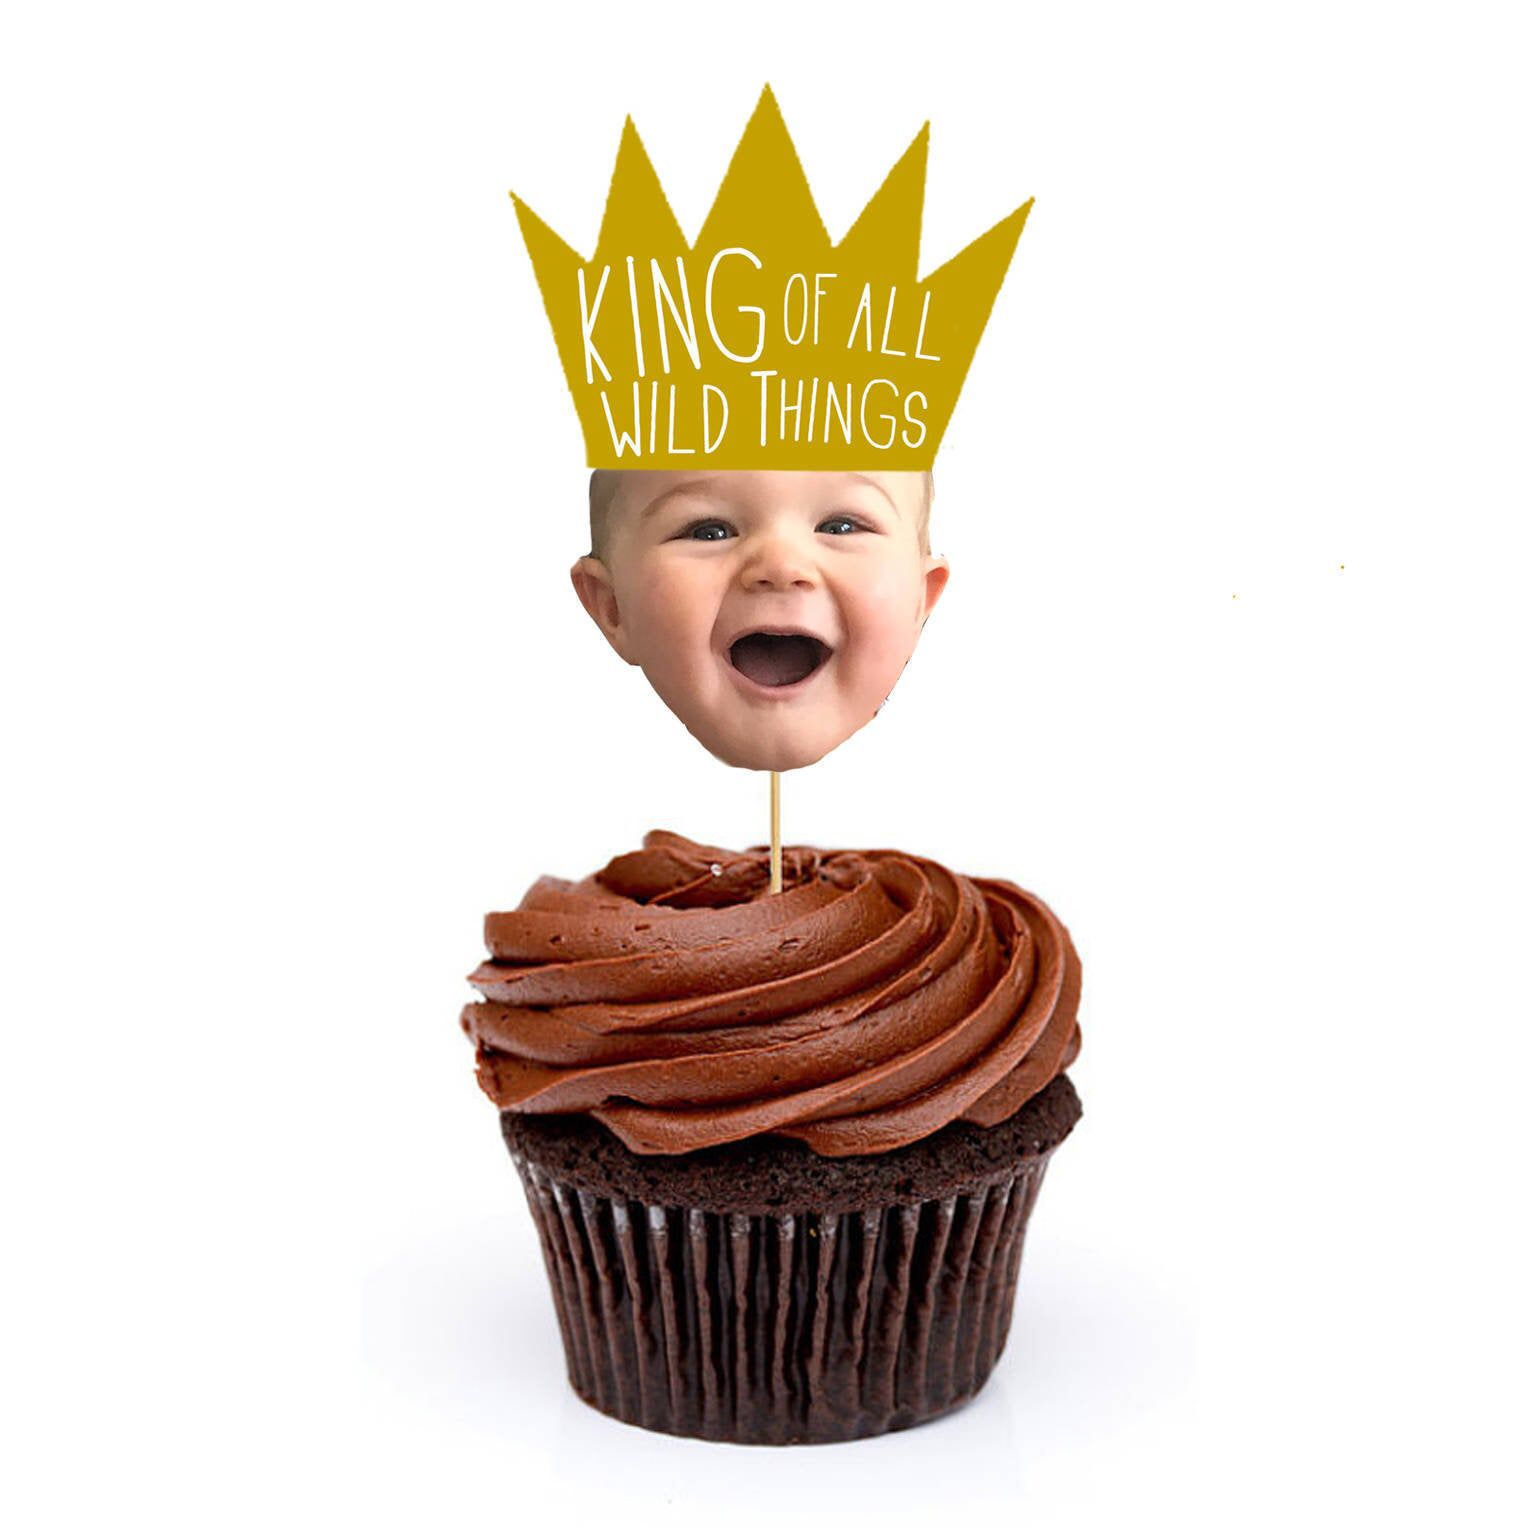 King of all wild things face cupcake toppers where the